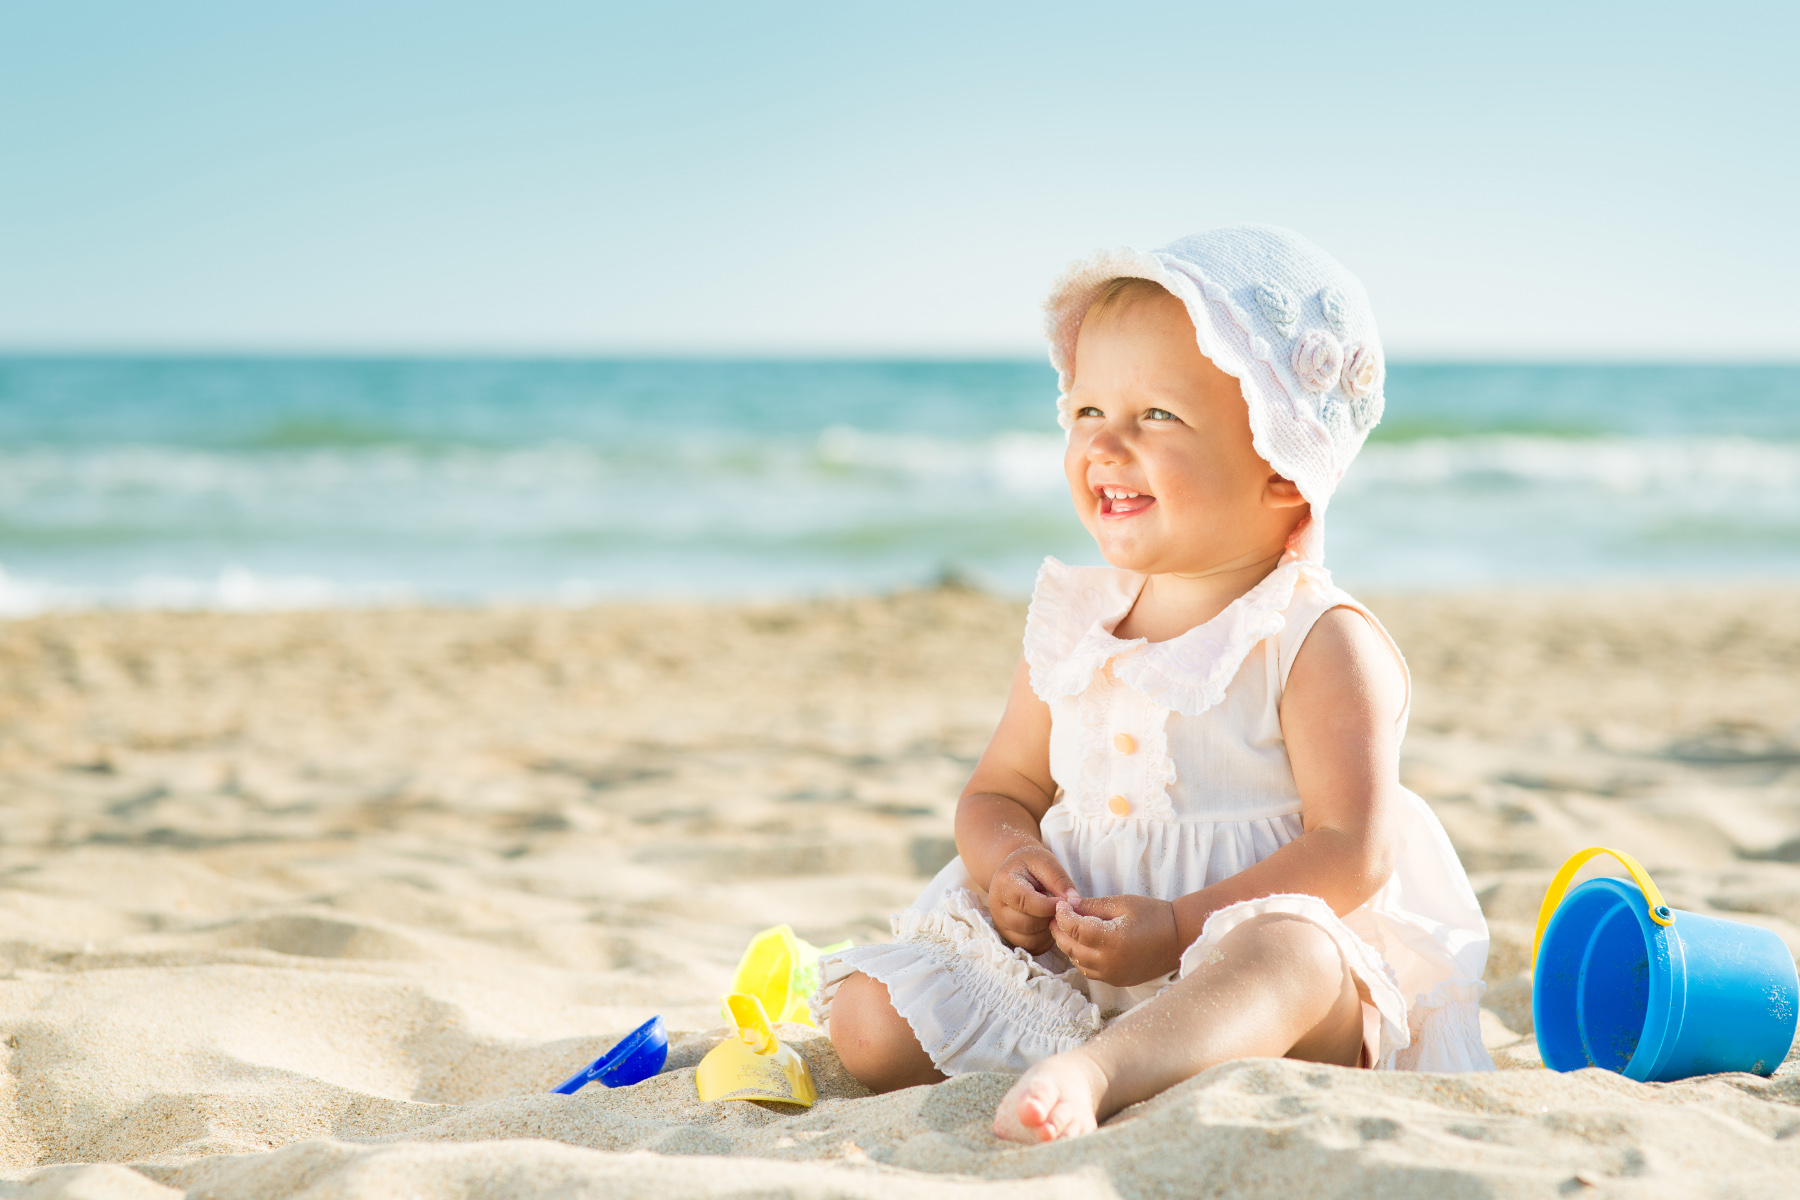 Smiling baby girl on the beach.